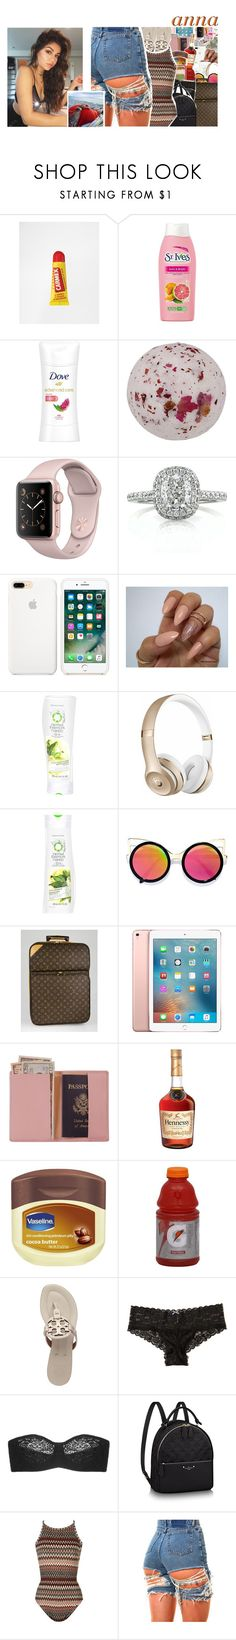 """""""love on the brain"""" by m-elaningoddess ❤ liked on Polyvore featuring St. Ives, Mark Broumand, Herbal Essences, Beats by Dr. Dre, LULUS, Louis Vuitton, Apple, Royce Leather, Vaseline and Gatorade"""